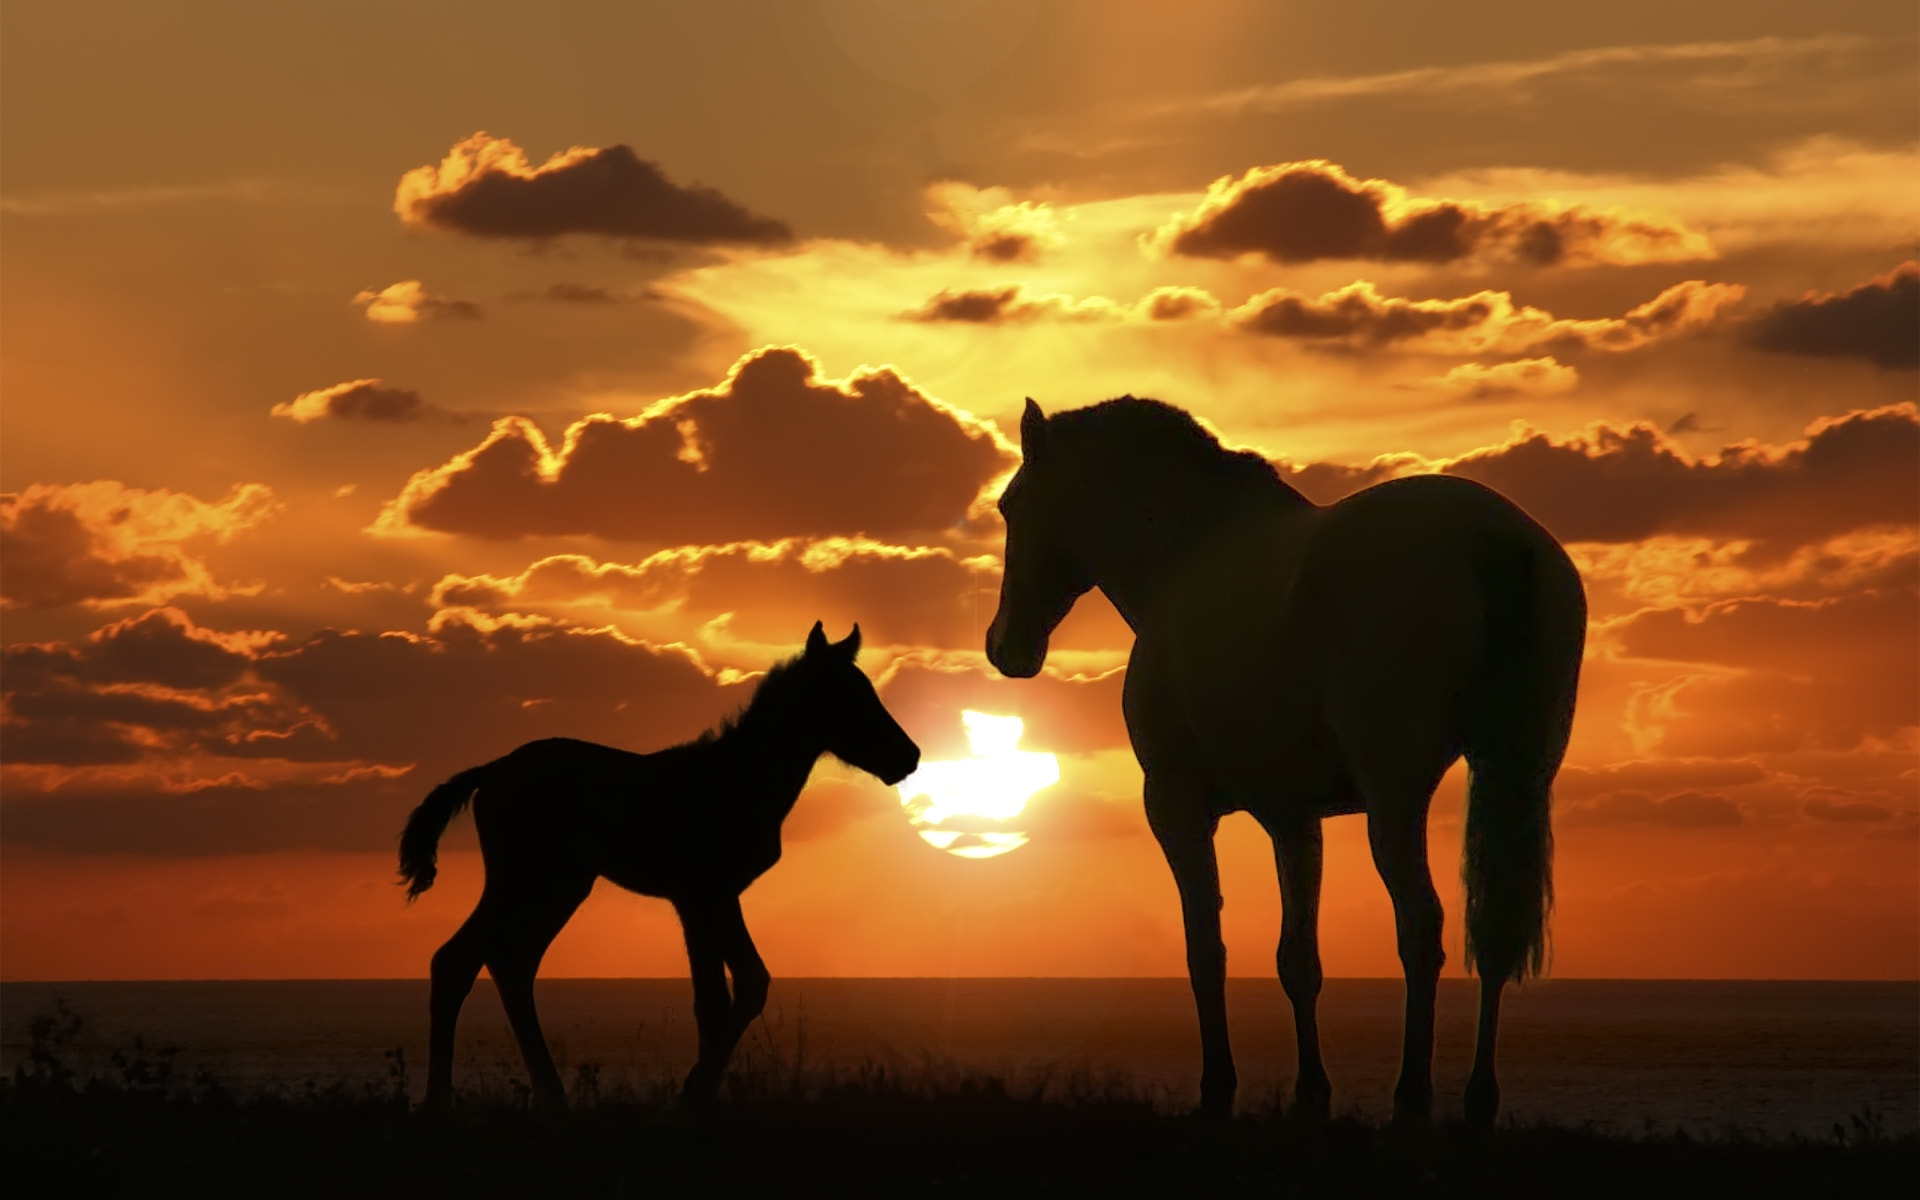 Photograph Sunset with Horse by Nicolo' Morbidelli on 500px